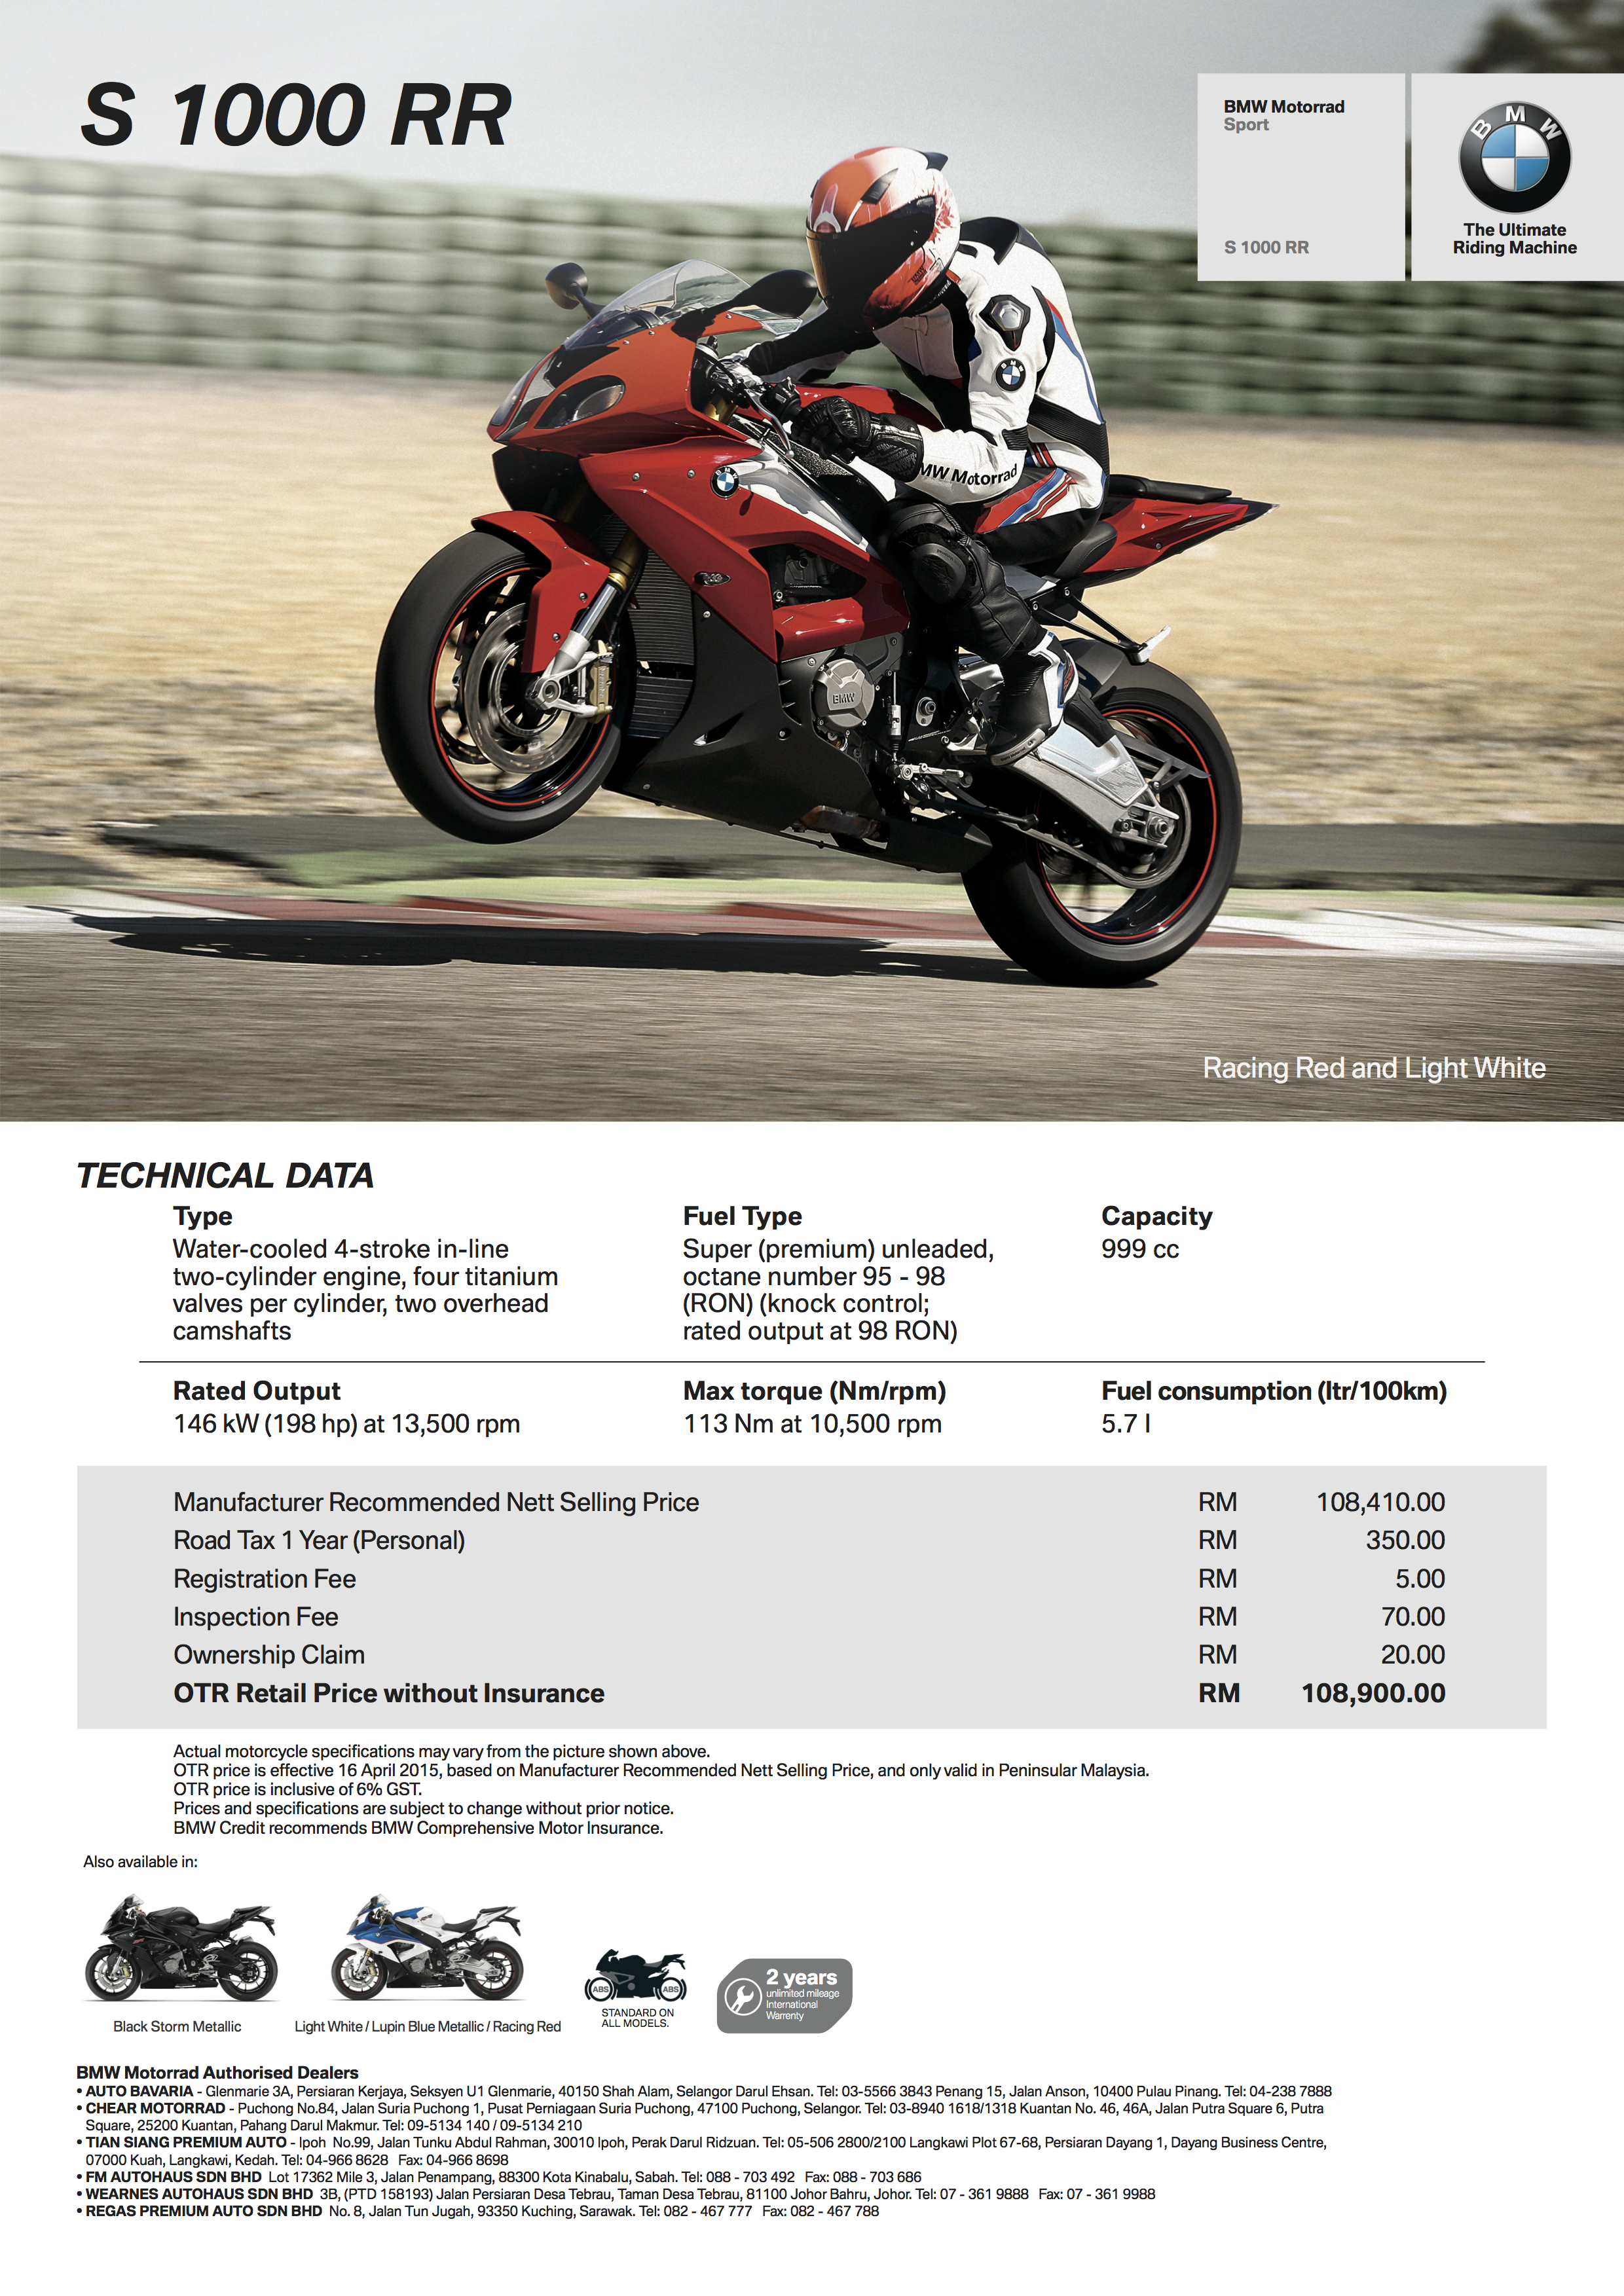 Inclusive Of A Two Year Unlimited Mileage Warranty The 2015 Spec BMW S1000RR Carries Starting Price RM108900 OTR 6 GST Without Insurance